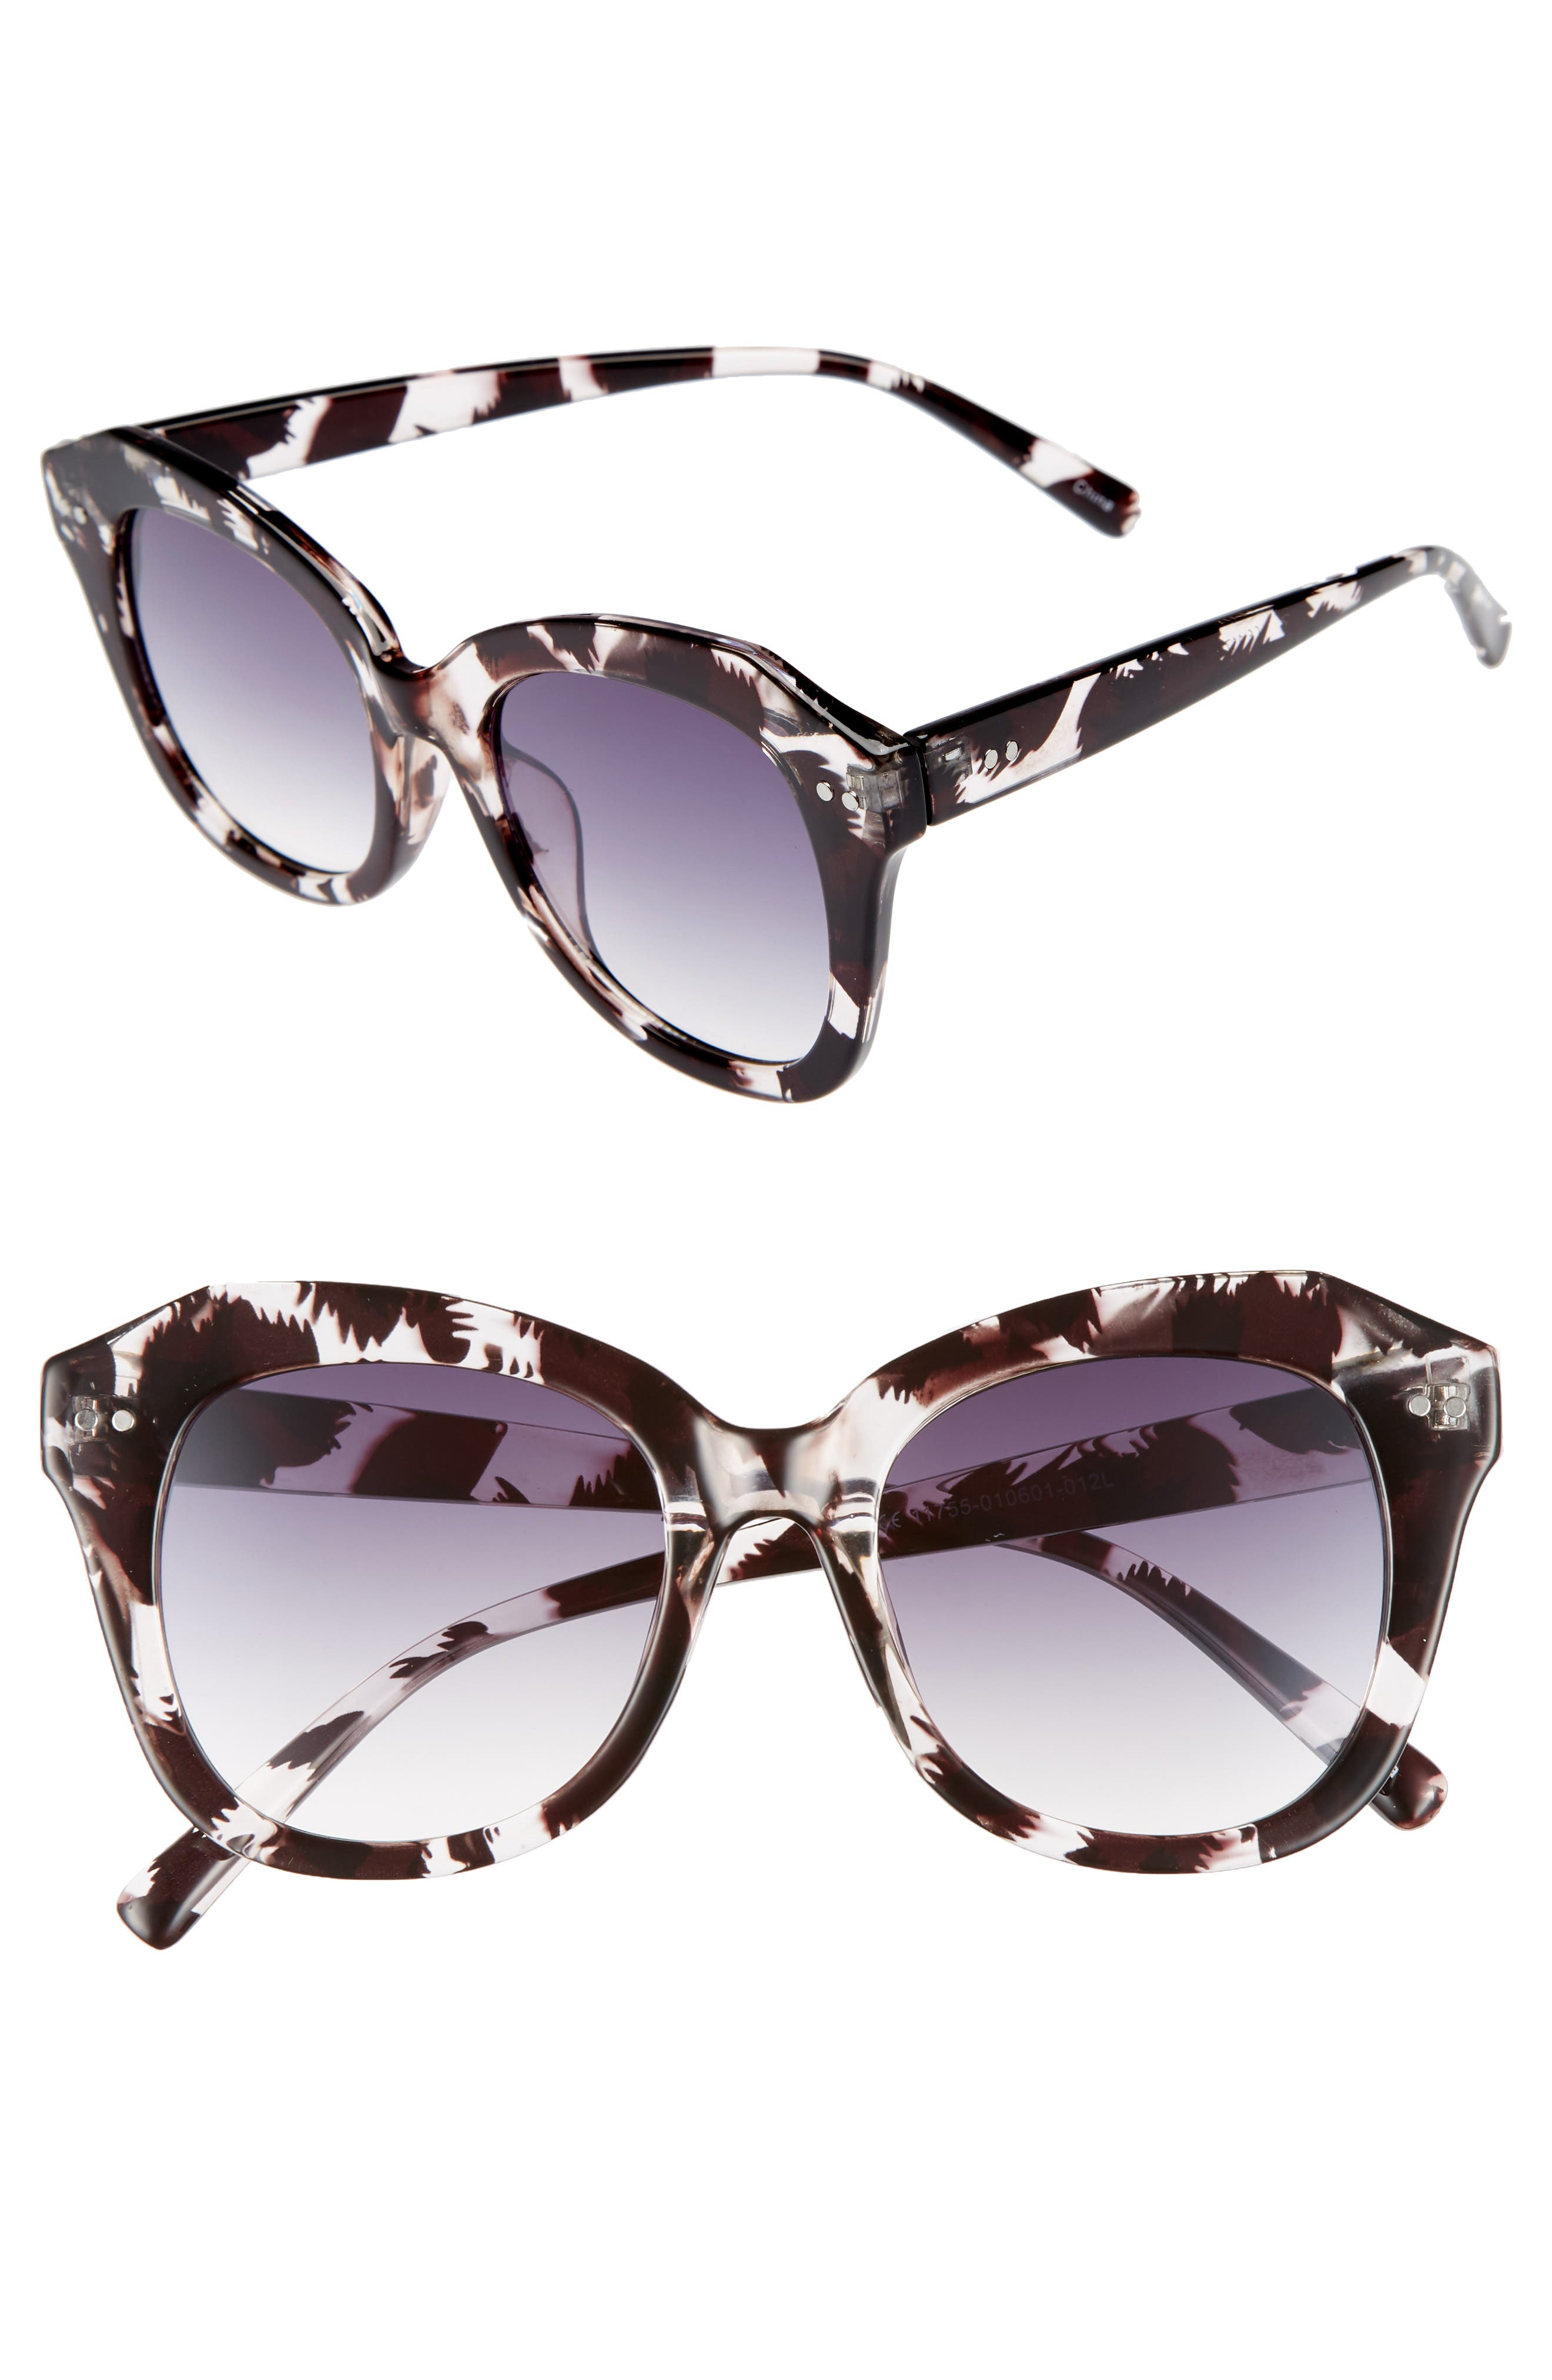 Marbled Square Sunglasses,                             Main thumbnail 1, color,                             Black/ Clear